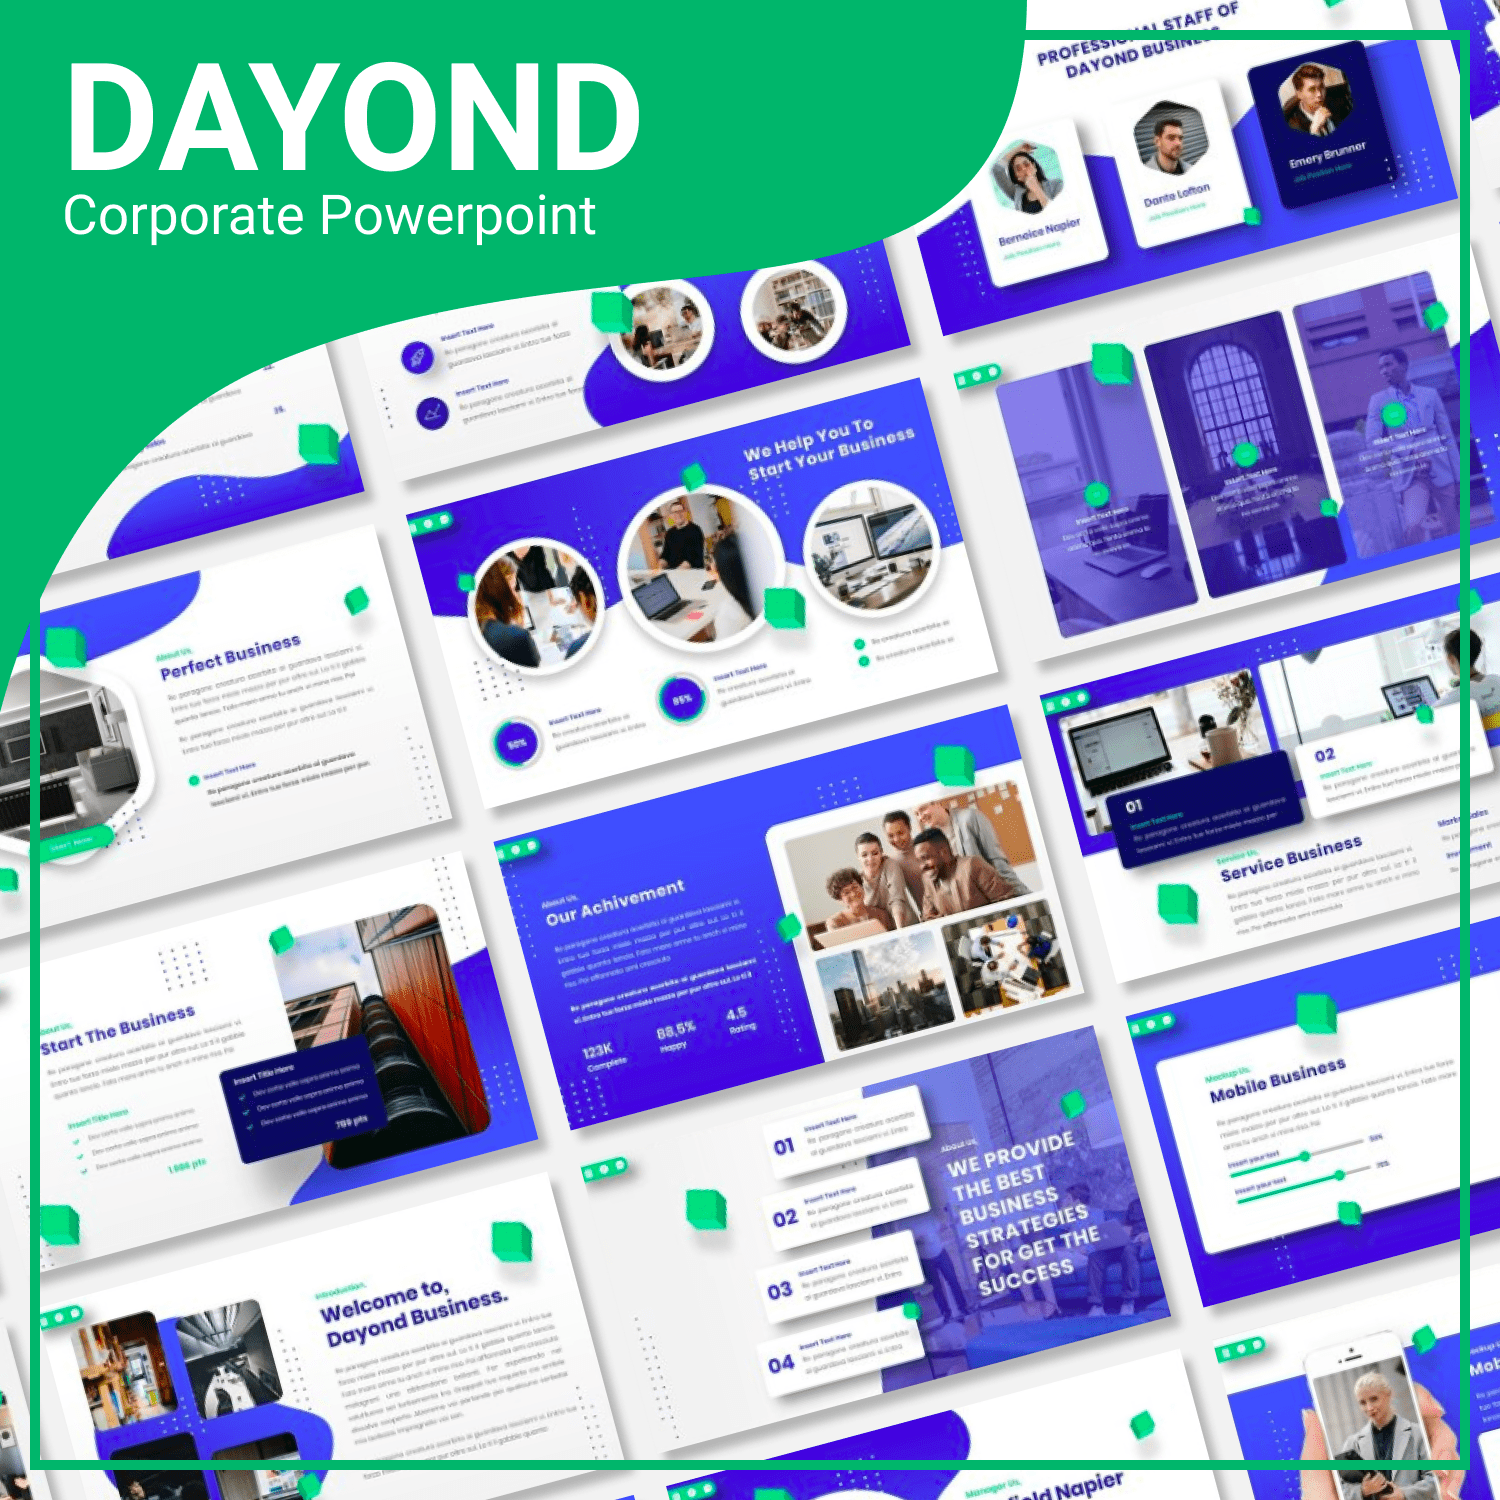 Dayond Corporate Powerpoint main cover.